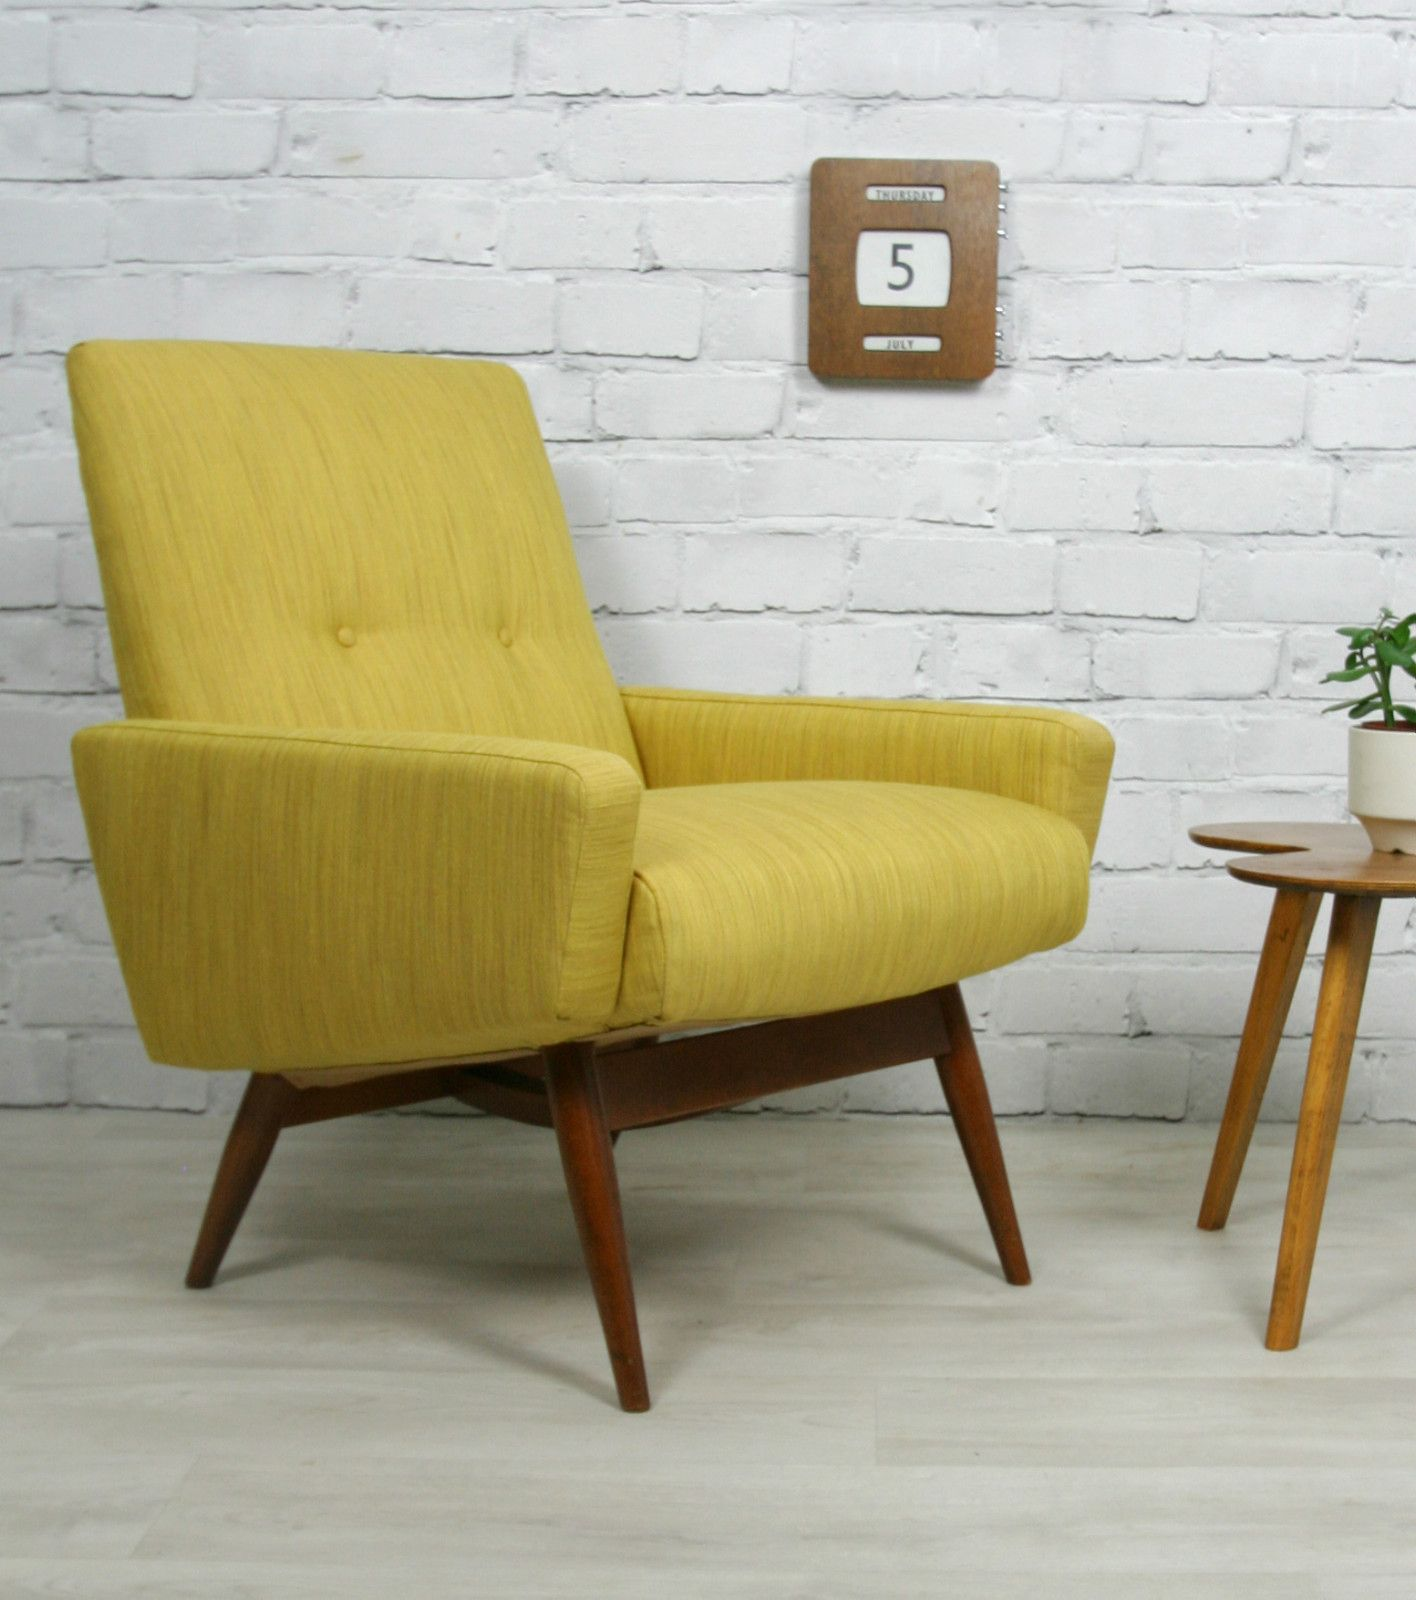 Fully Restored 1950s Parker Knoll Armchair